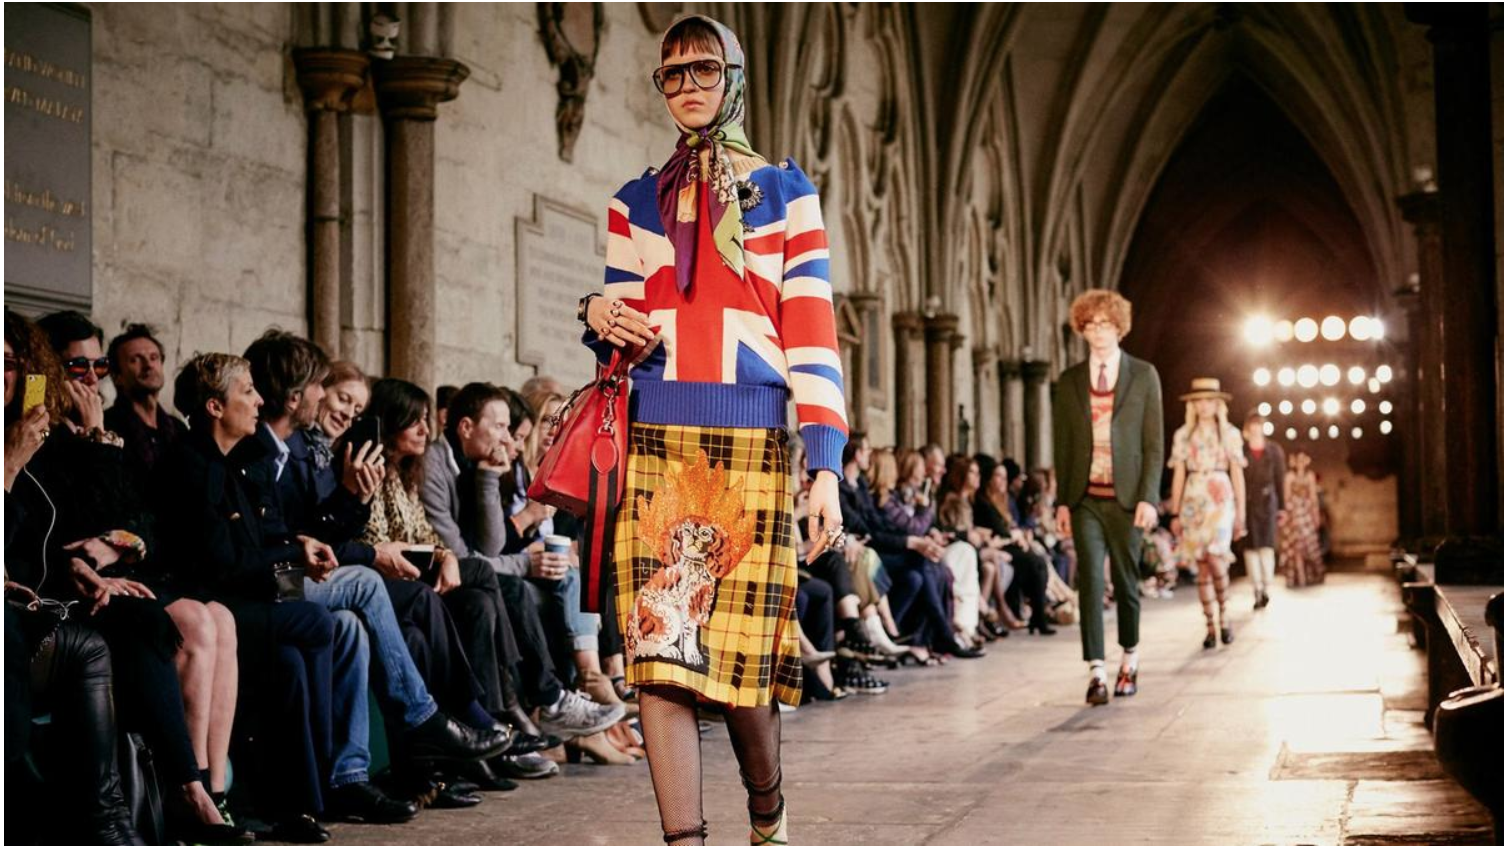 Gucci - Westminster Abbey 2016 for SS17